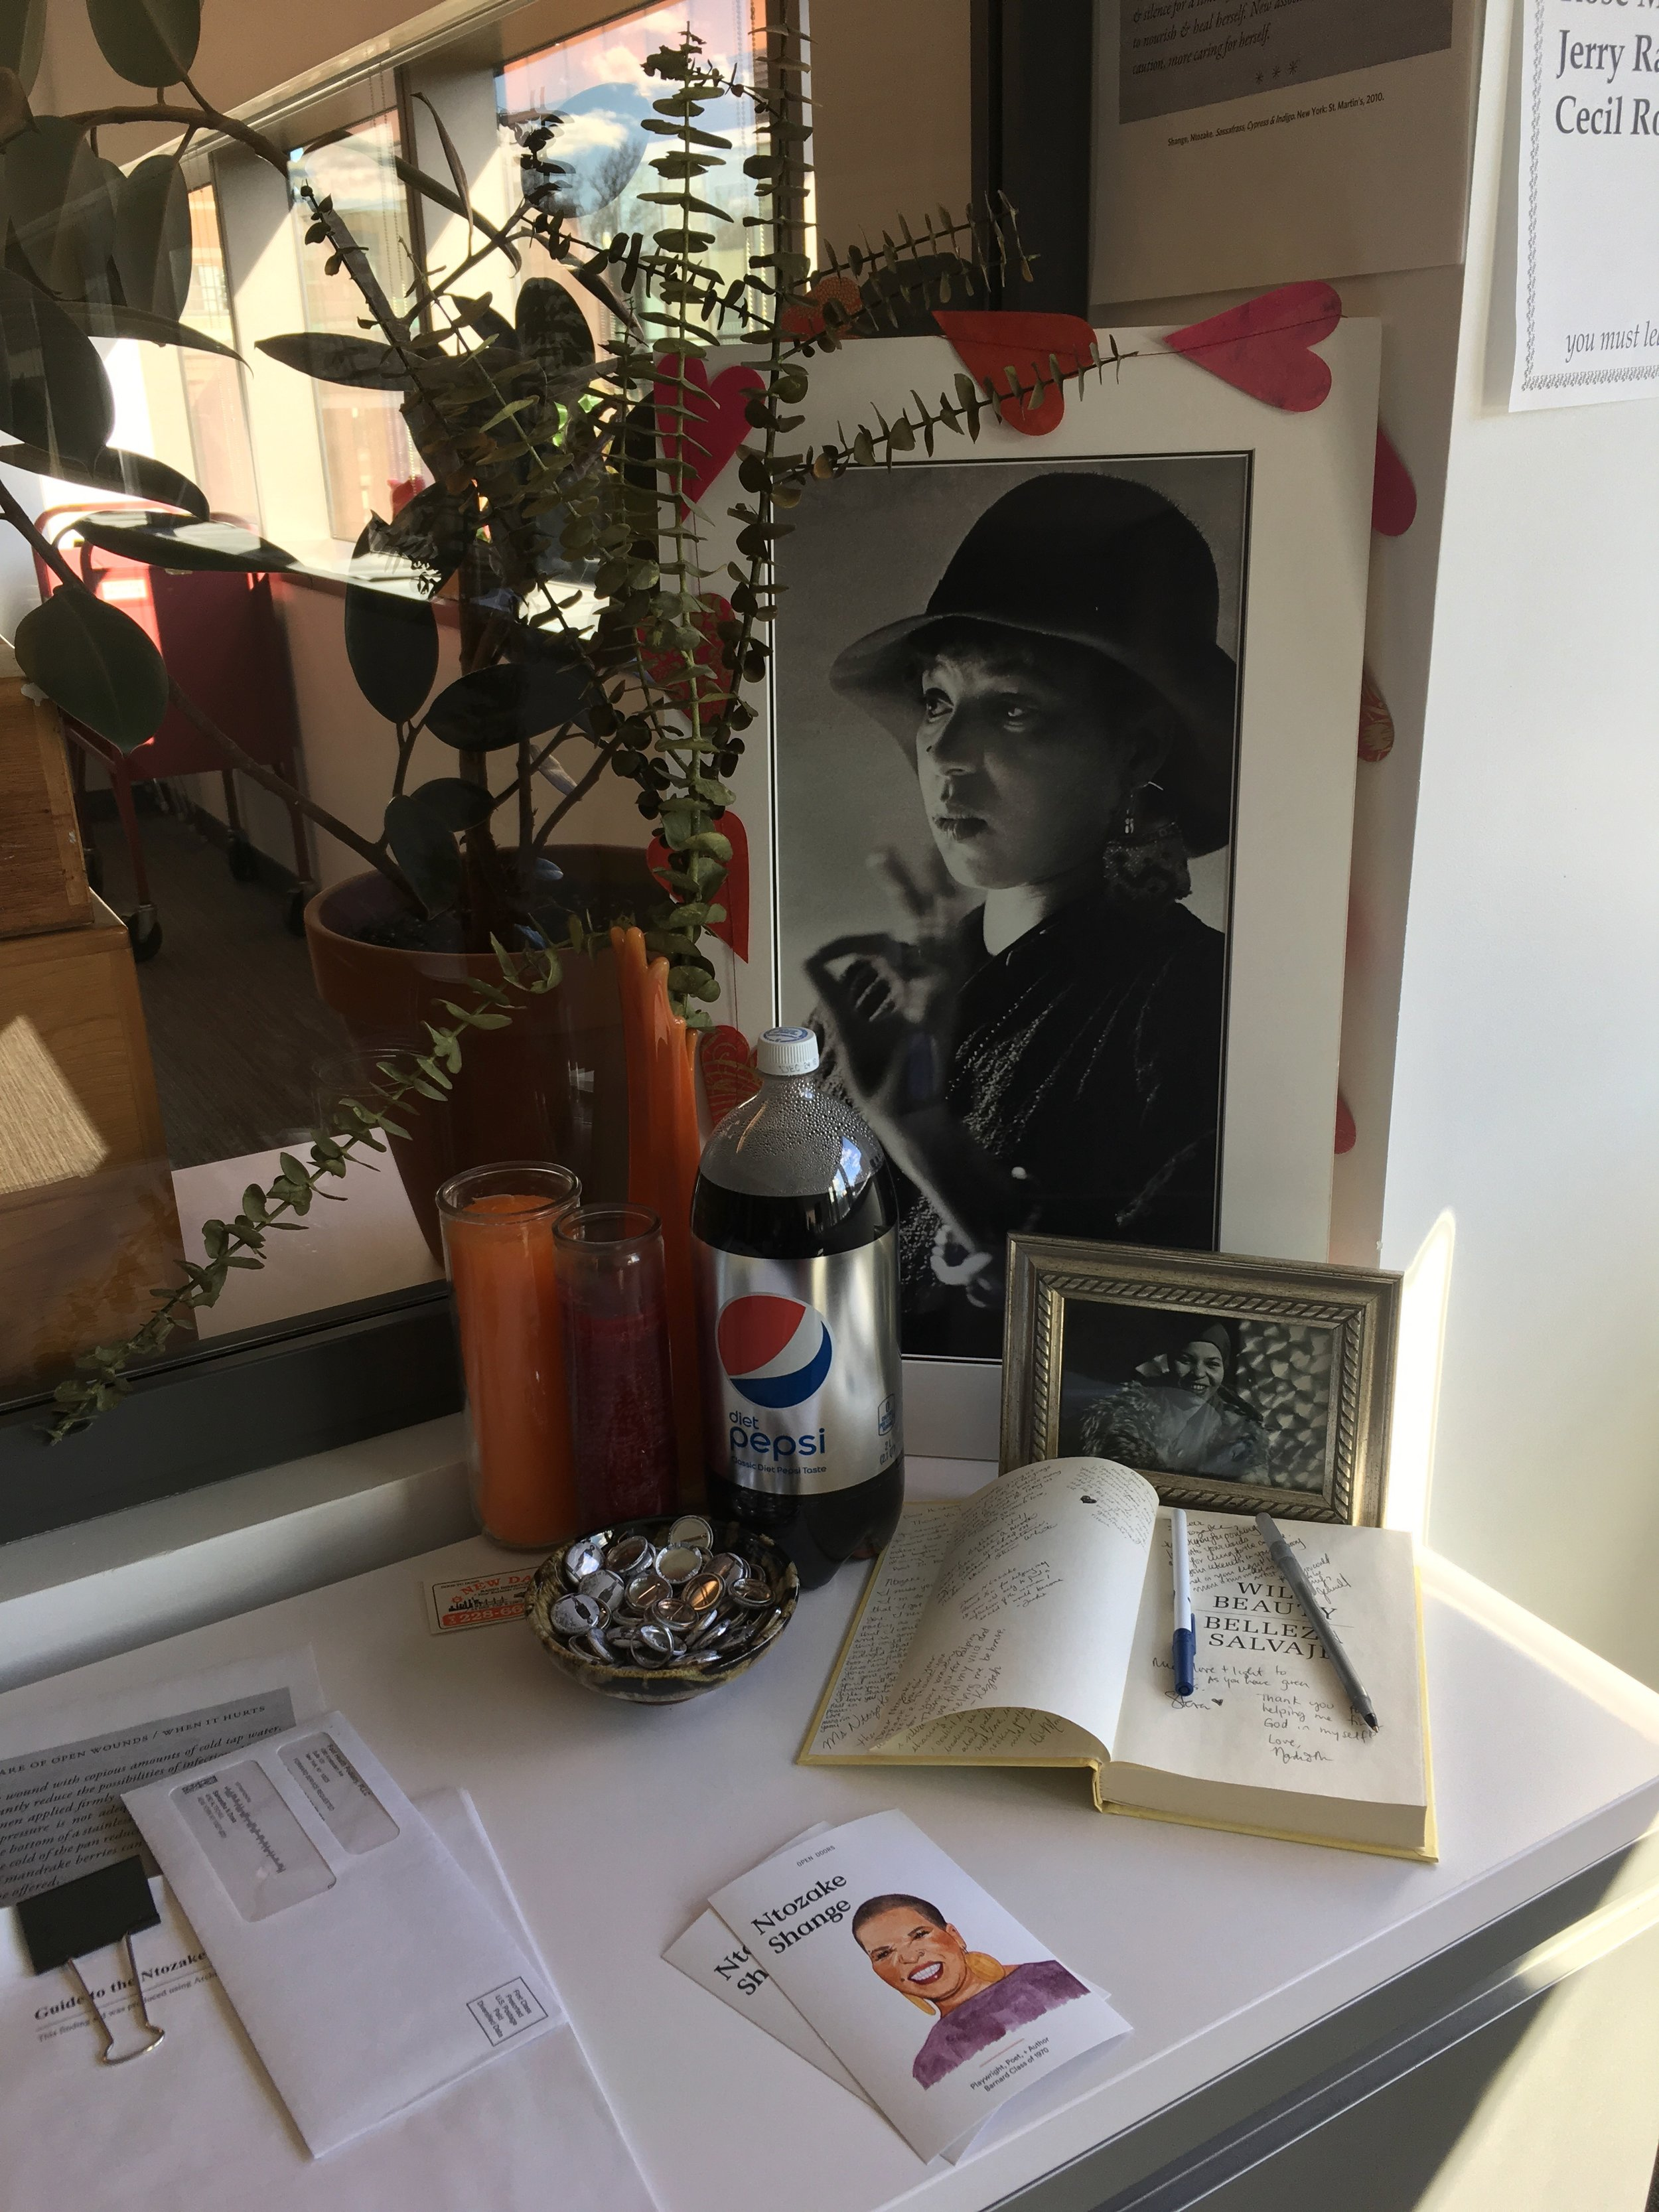 Figure 1. Ntozake Shange memorial, Barnard Archives and Special Collections, December 2018. Photograph by Anooradha Iyer Siddiqi.